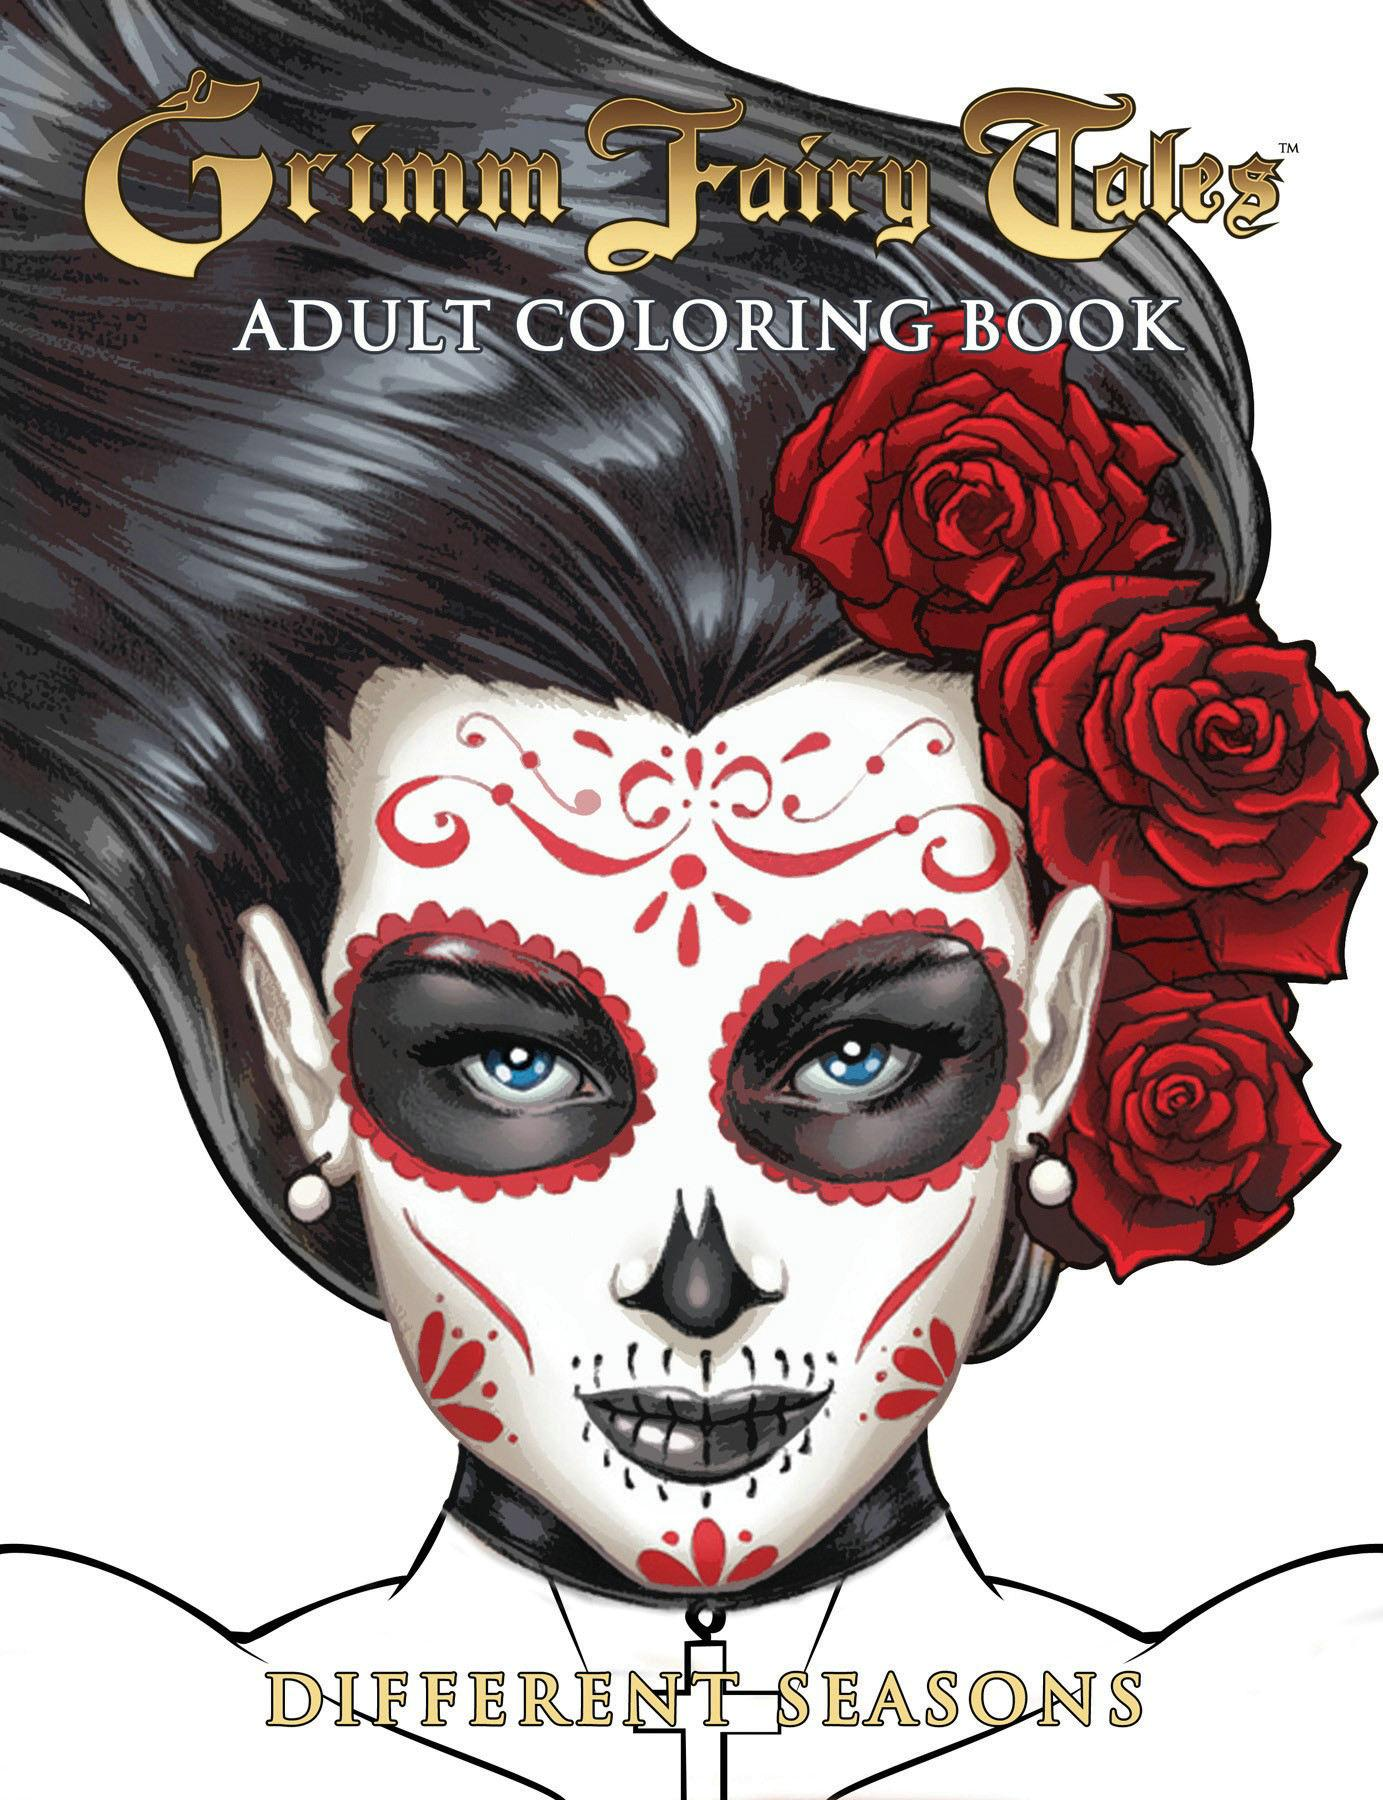 Grimm Fairy Tales Adult Coloring Book Different Seasons (Other ...